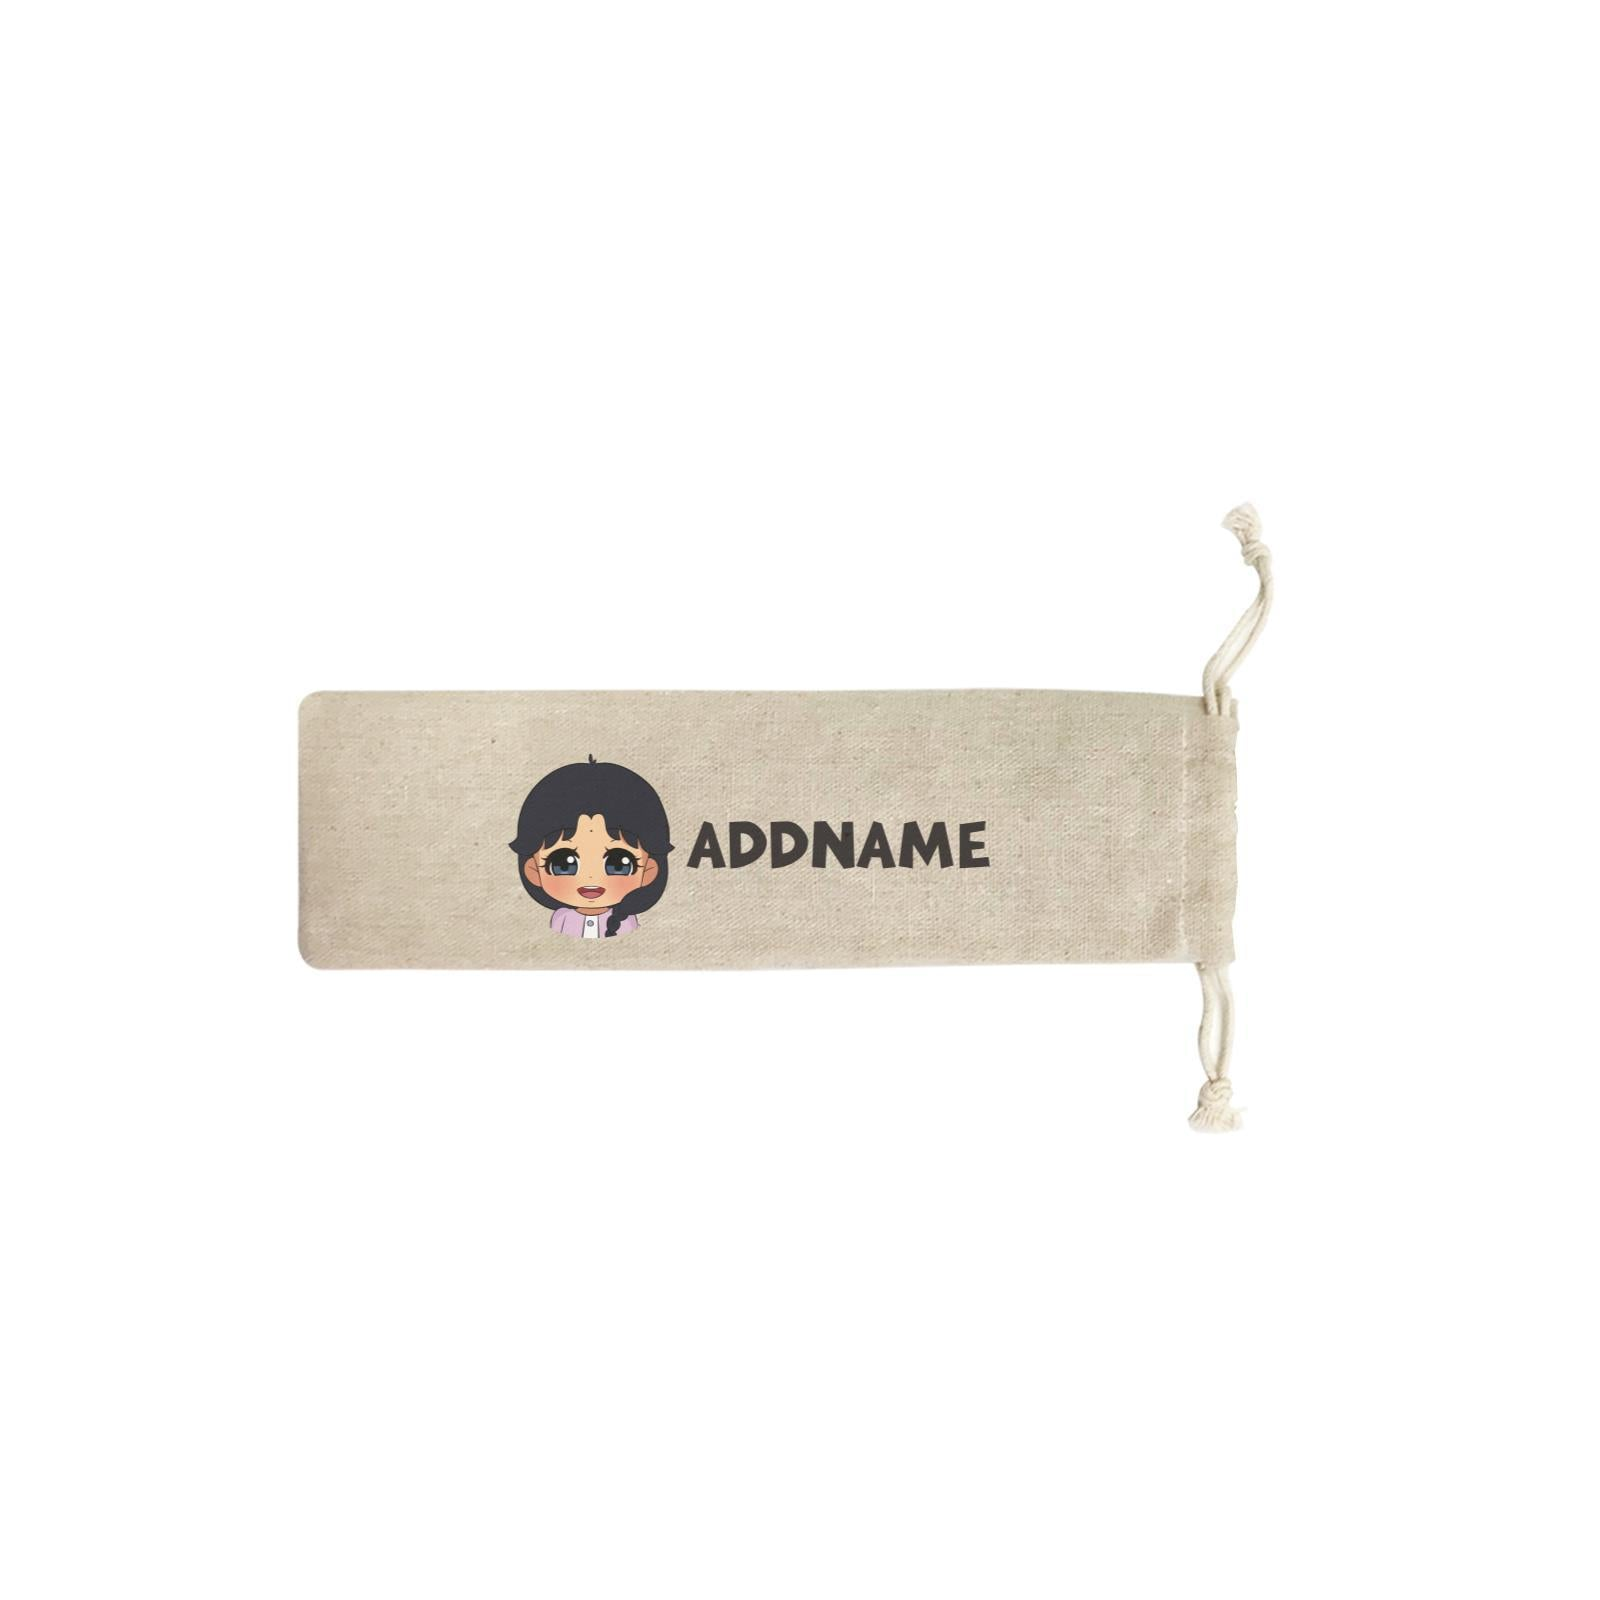 Children's Day Gift Series Little Indian Girl Addname SB Straw Pouch (No Straws included)